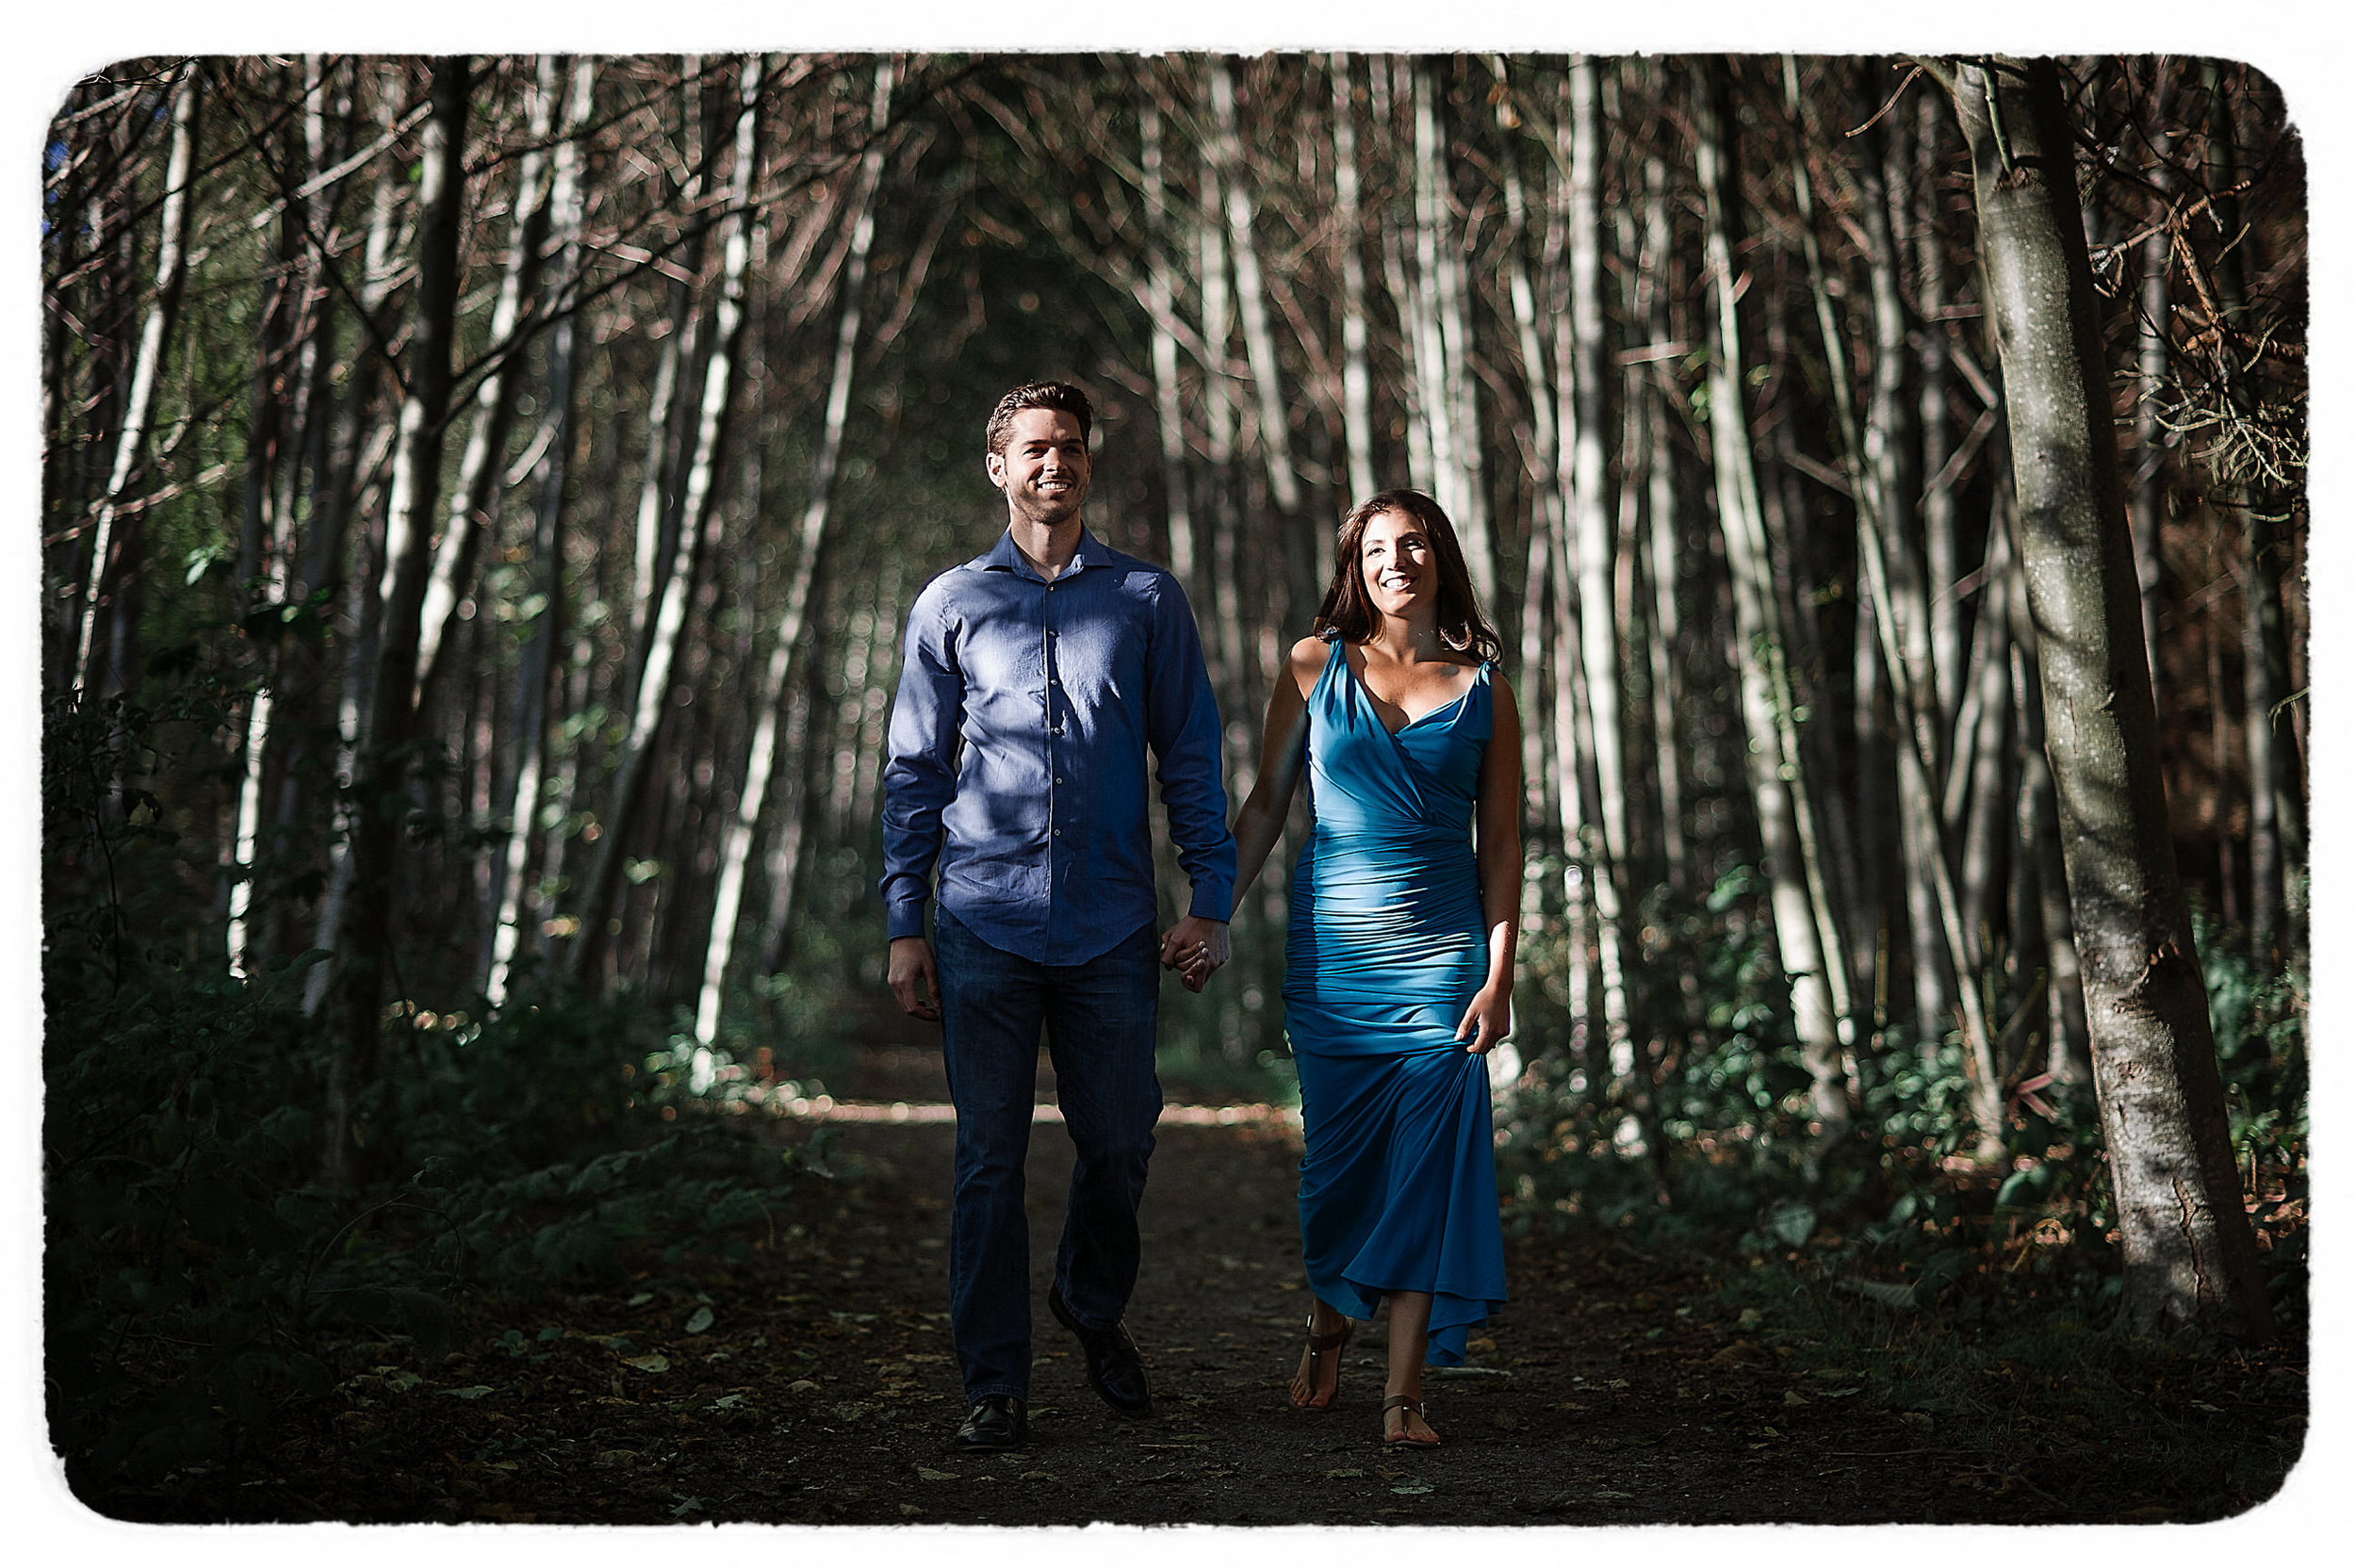 Kelly&Mike-EngagementSession-OriginalCollection-32Film.jpg